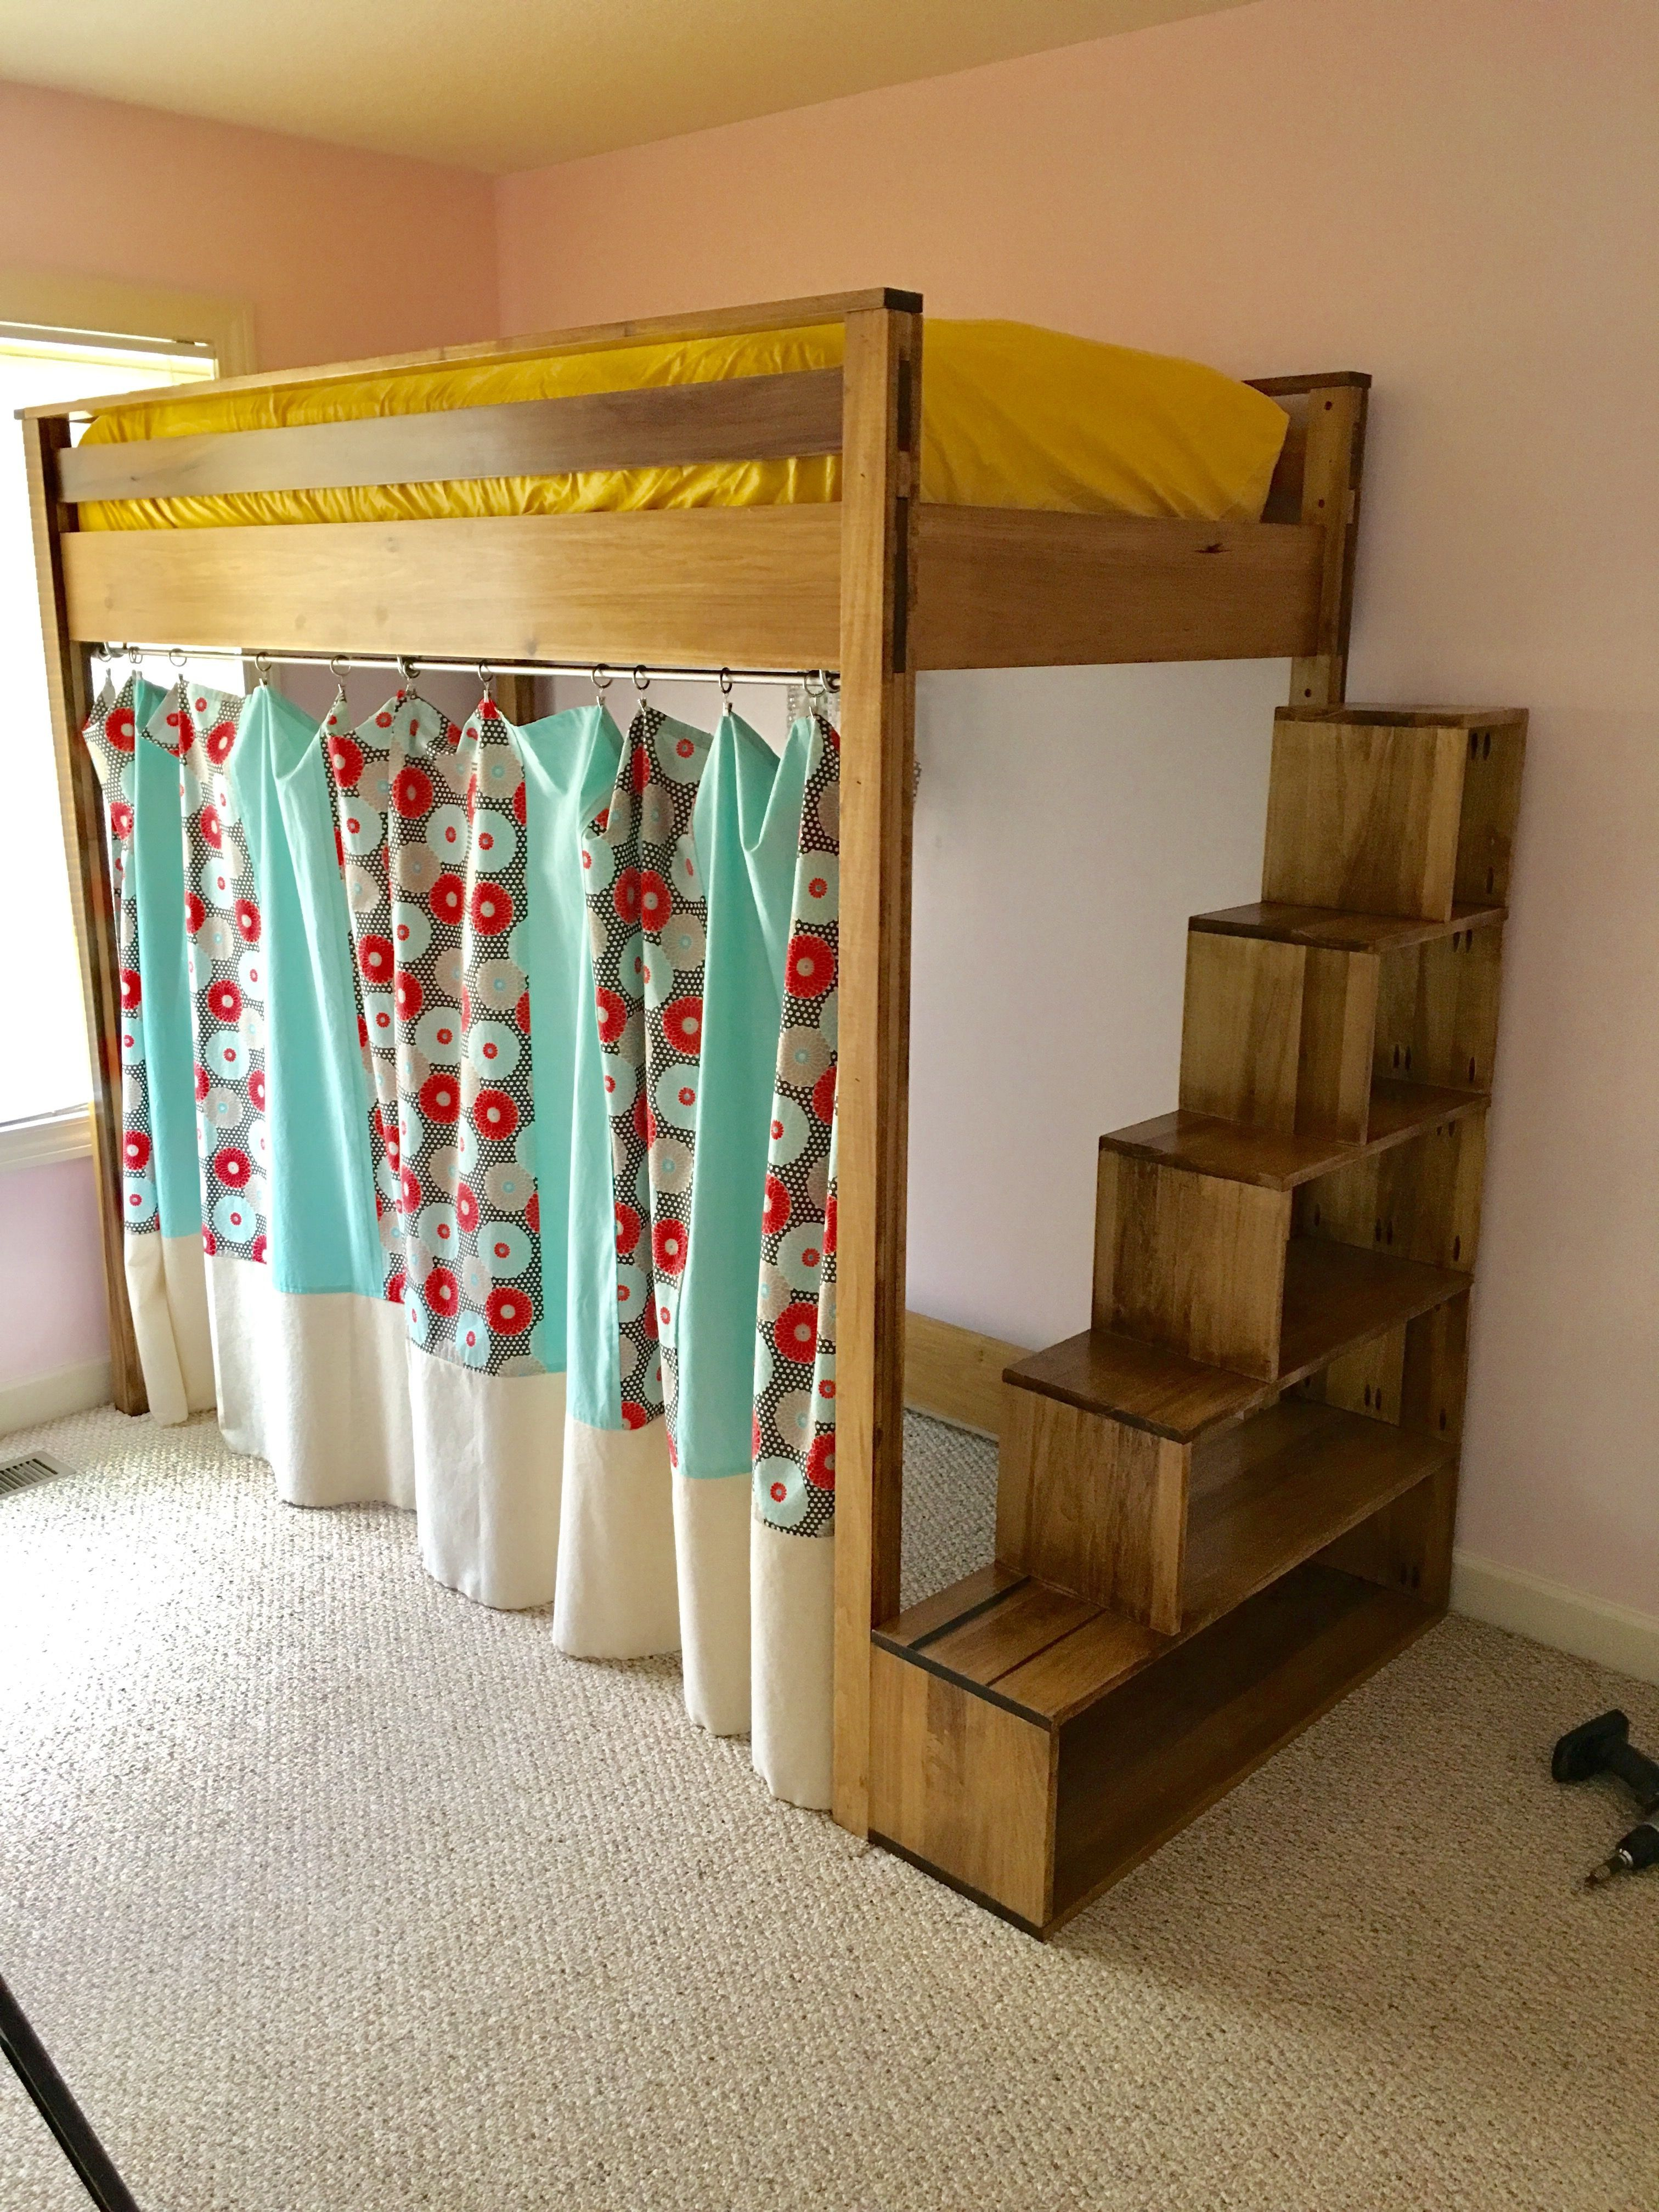 Pin By Cherryann Savich On Diy In 2020 Loft Beds For Small Rooms Diy Loft Bed Loft Bed Plans